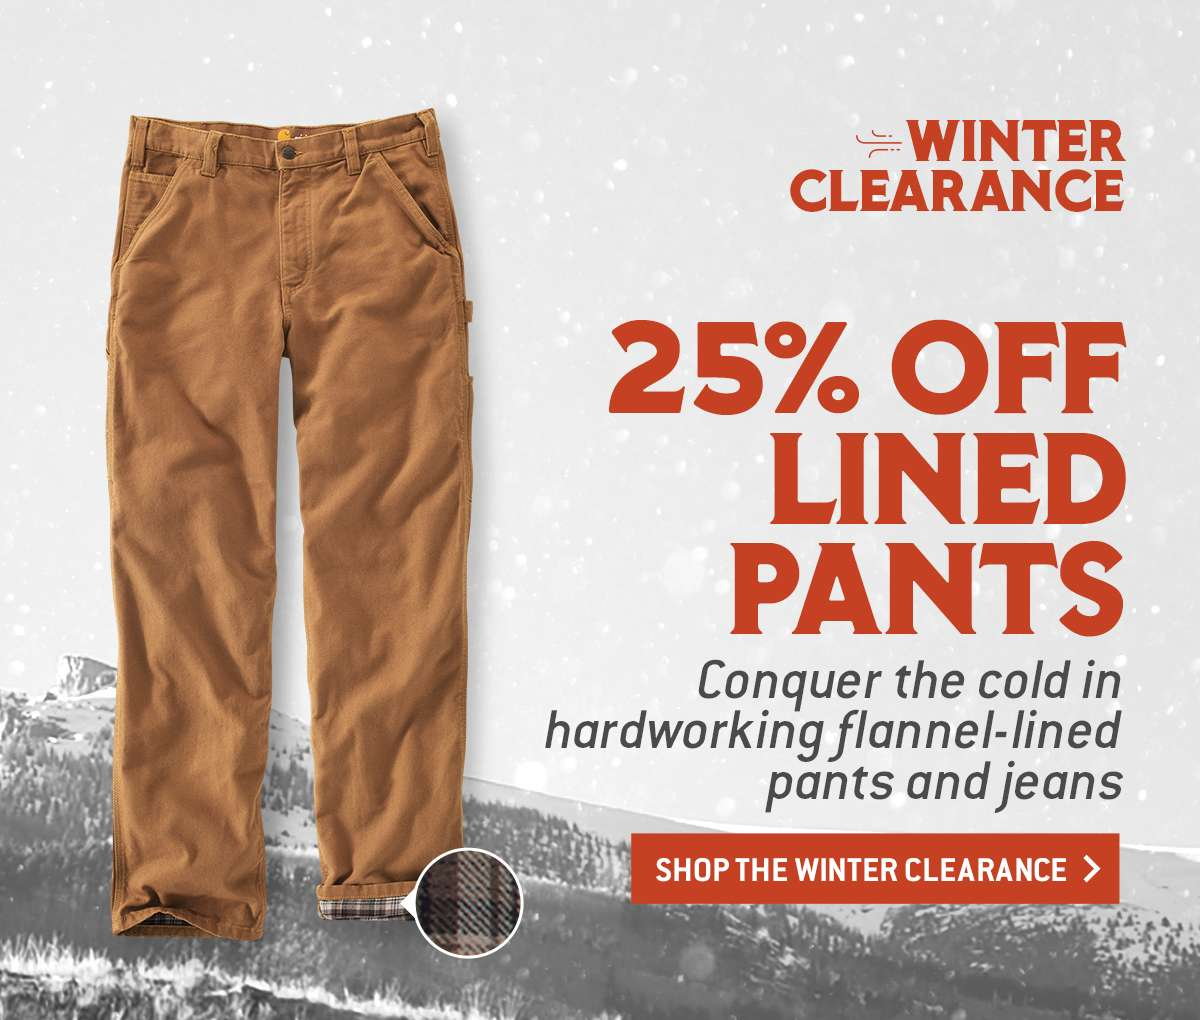 SHOP WINTER CLEARANCE